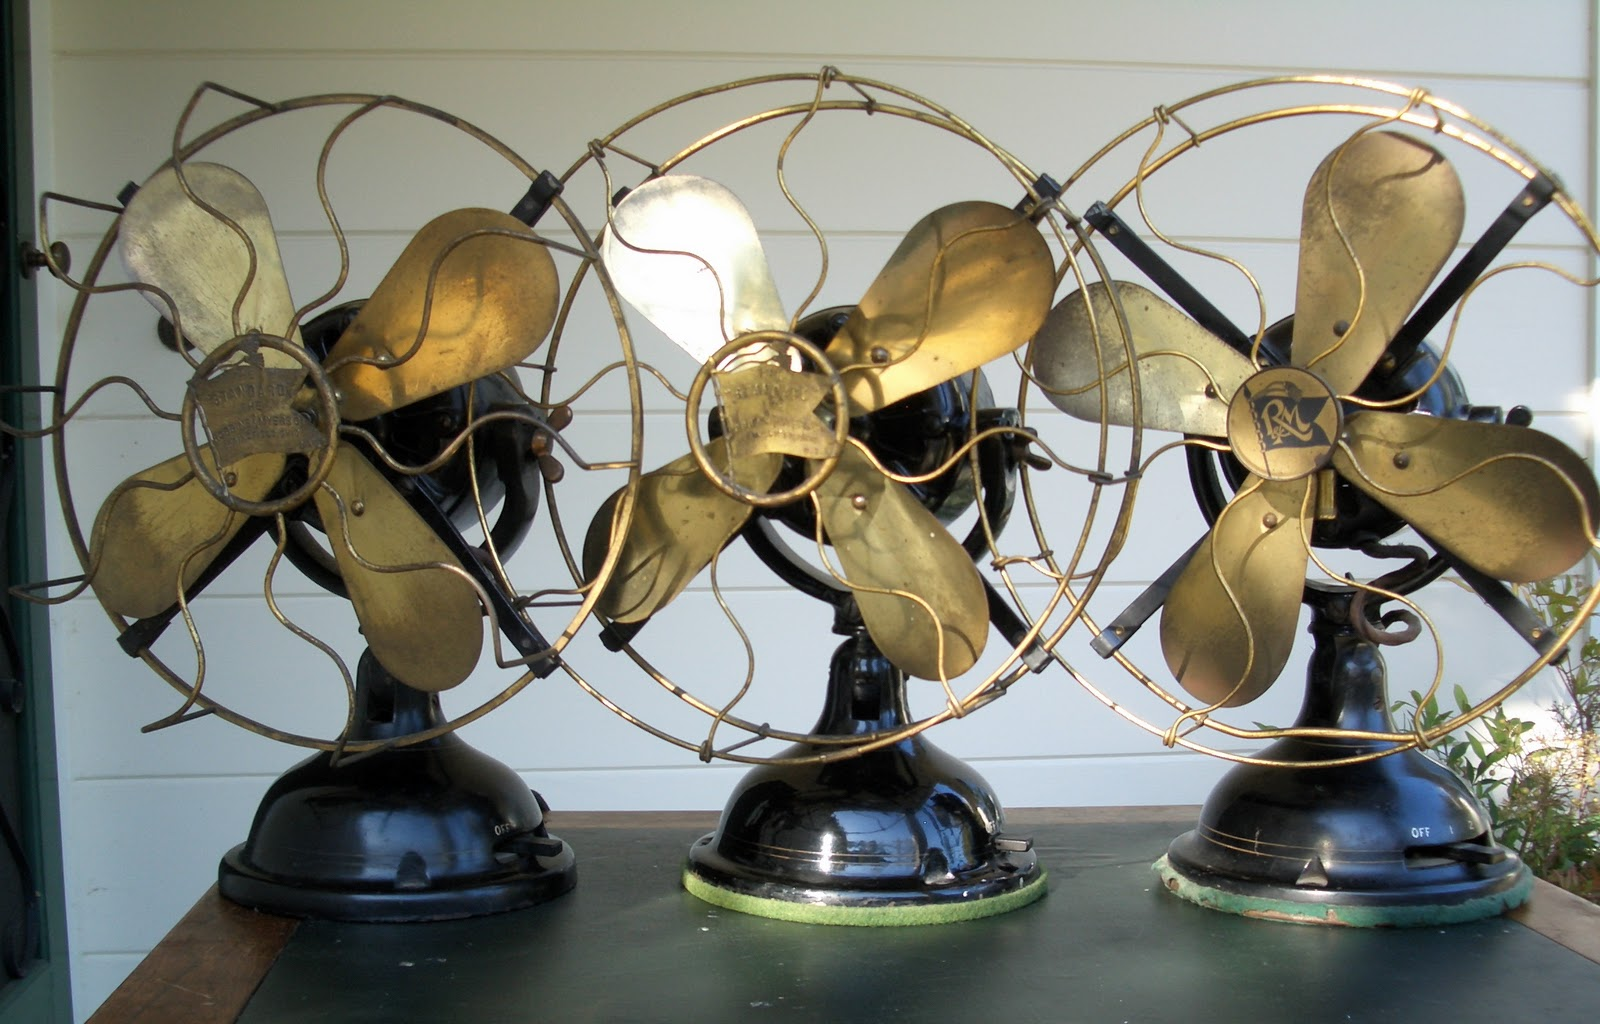 Vintage Looking Fan Early Electric Fans Robbins And Myers List 1404 Desk Fans